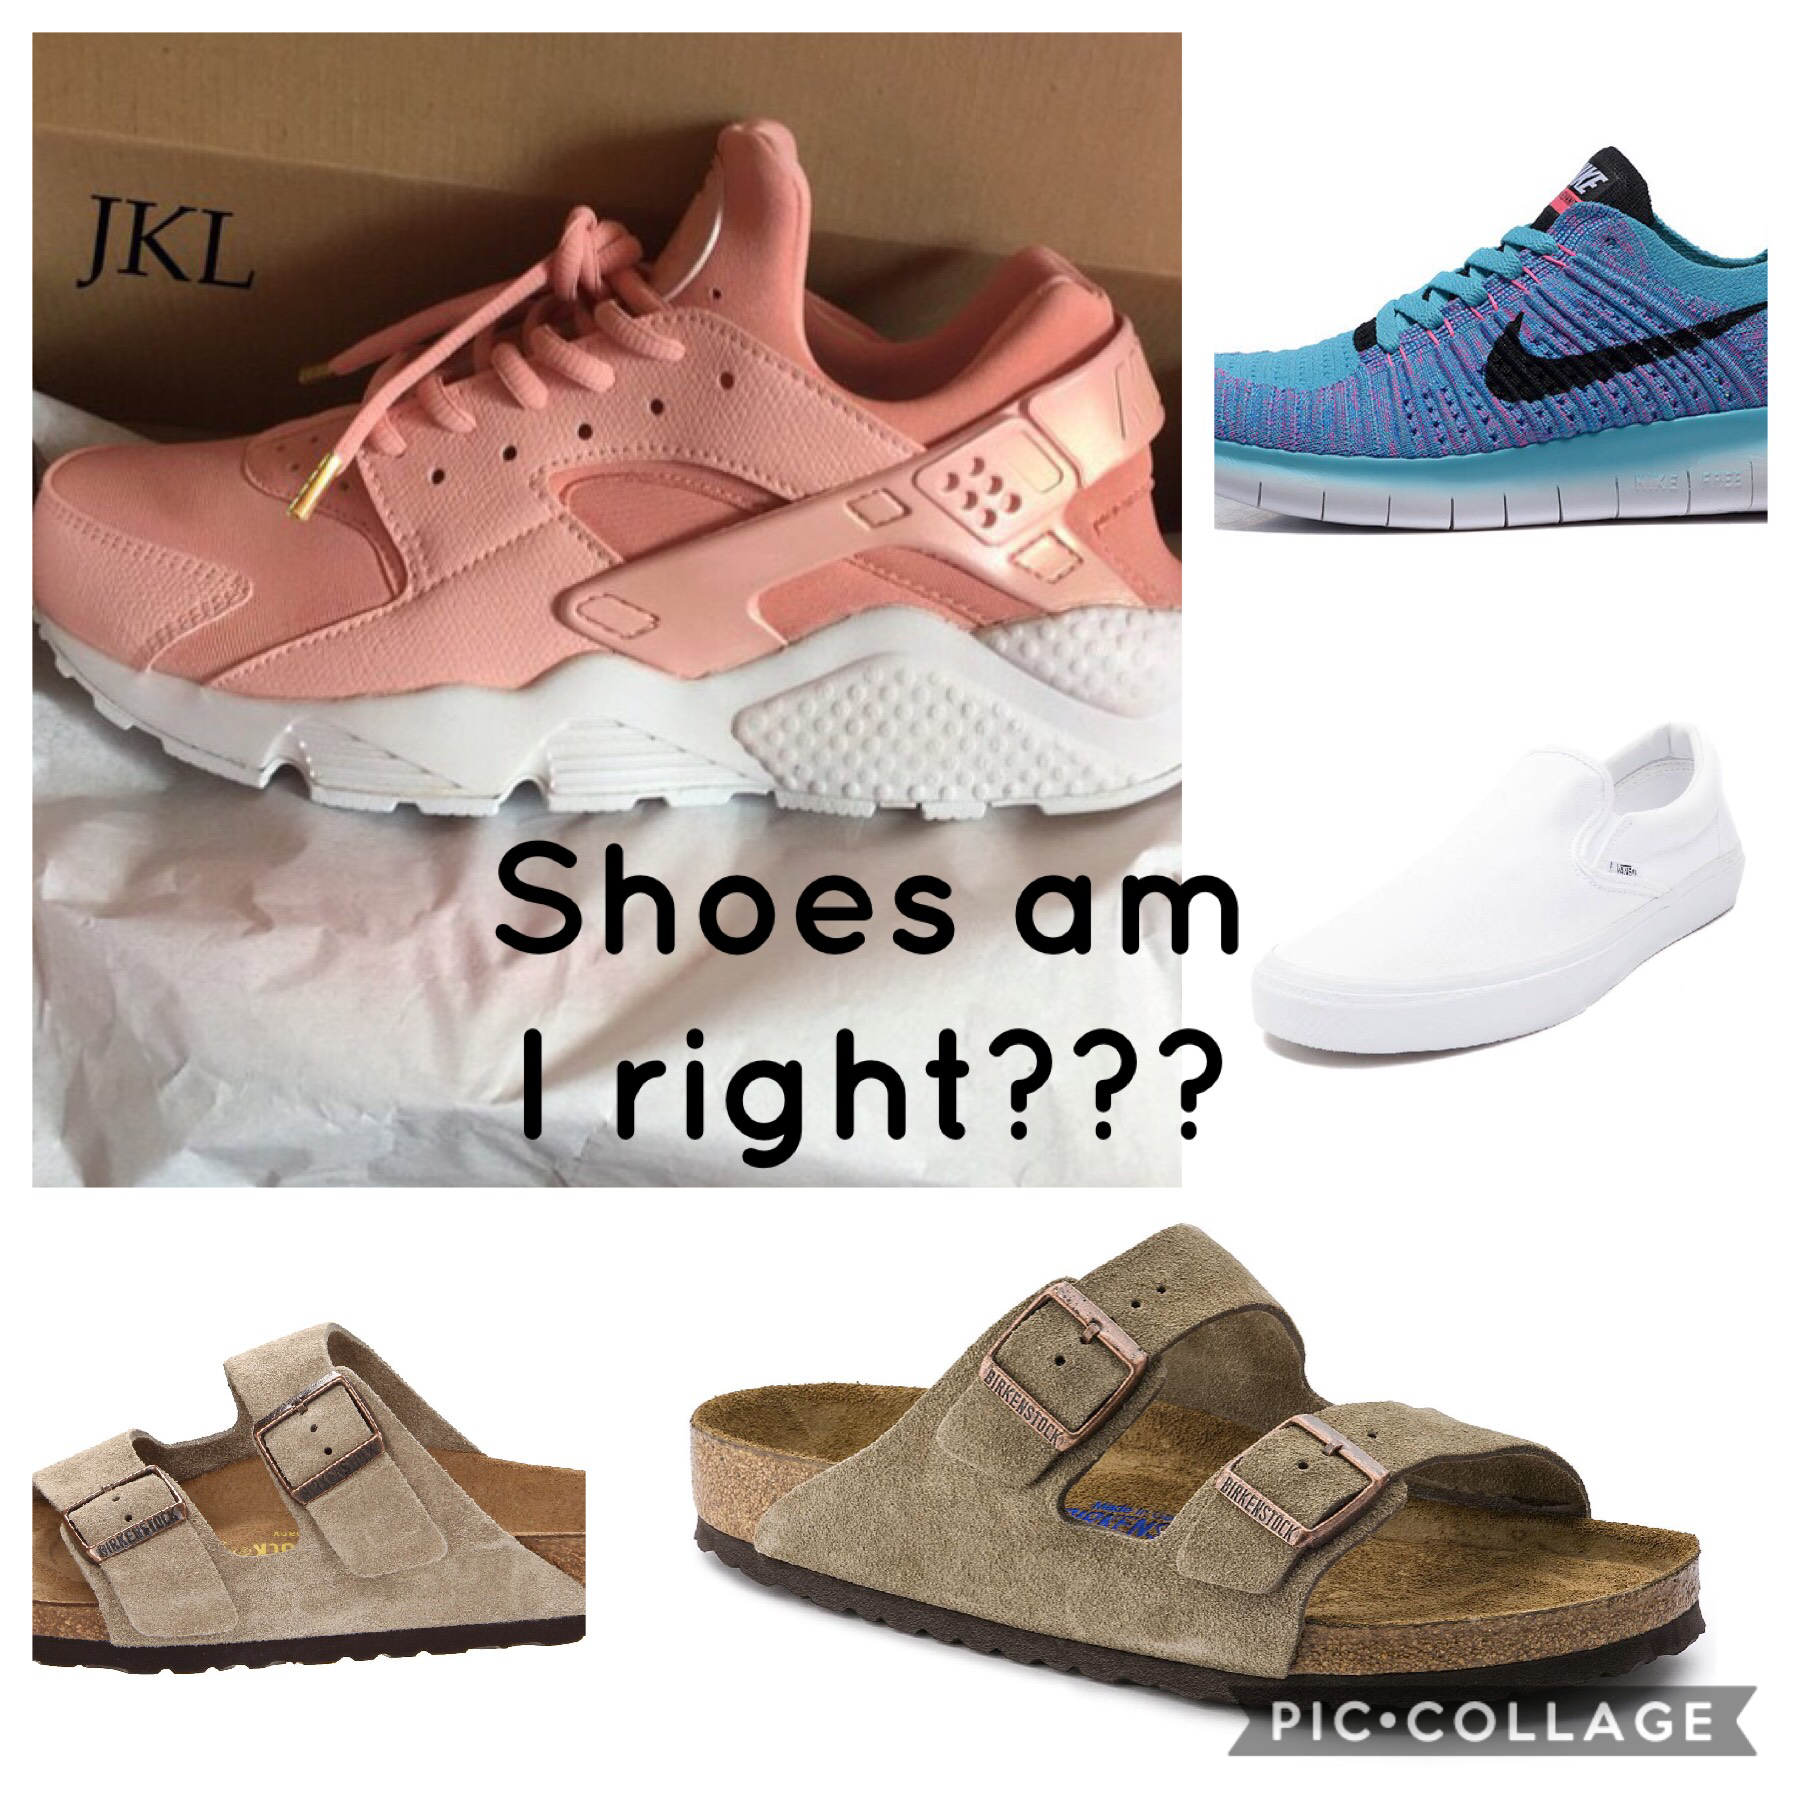 Shoes am I right???